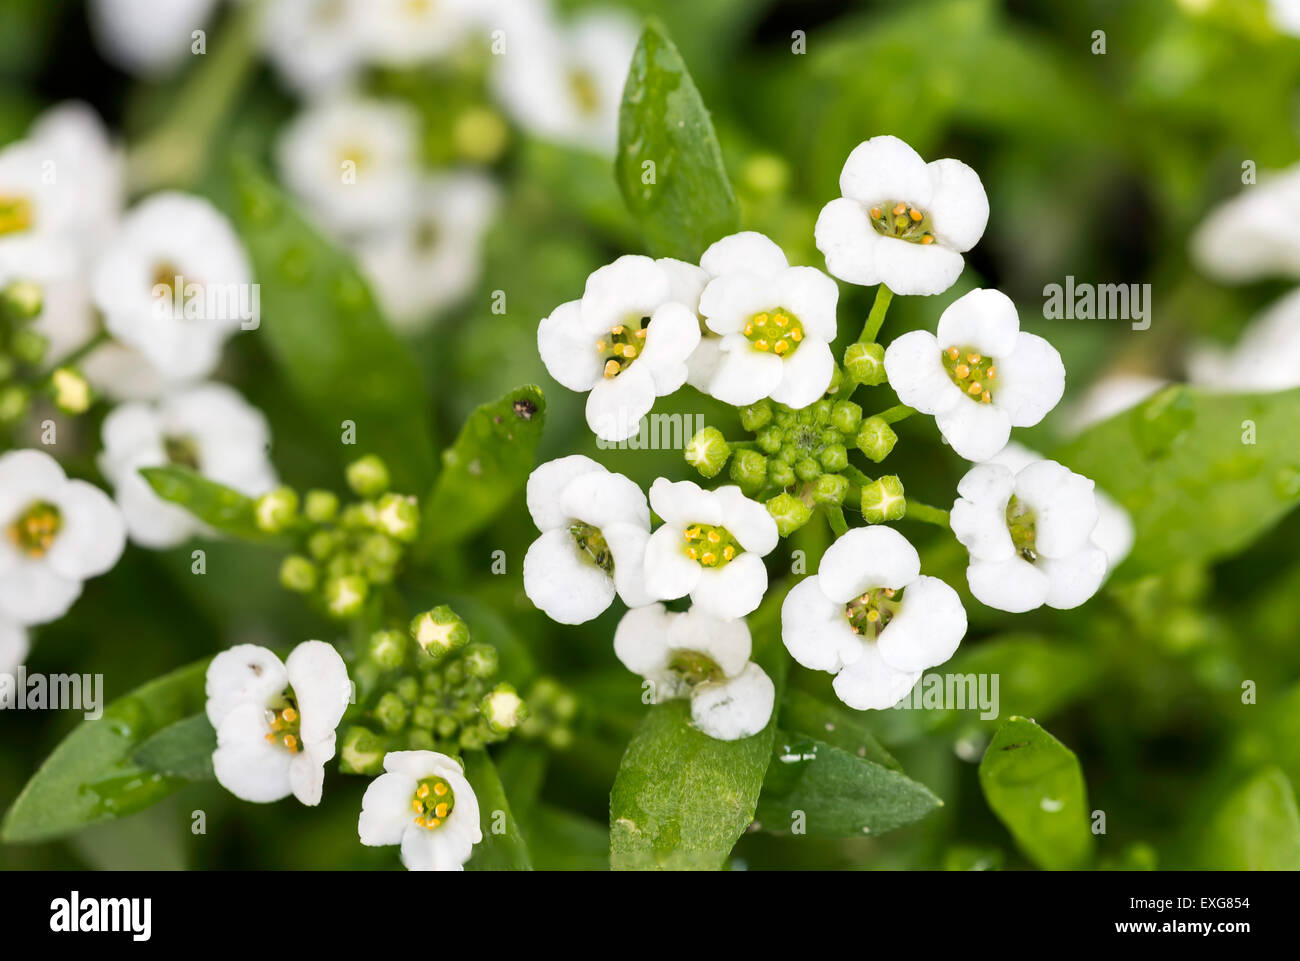 Little White Lobularia Maritima Flowers With Four Petals In A Garden